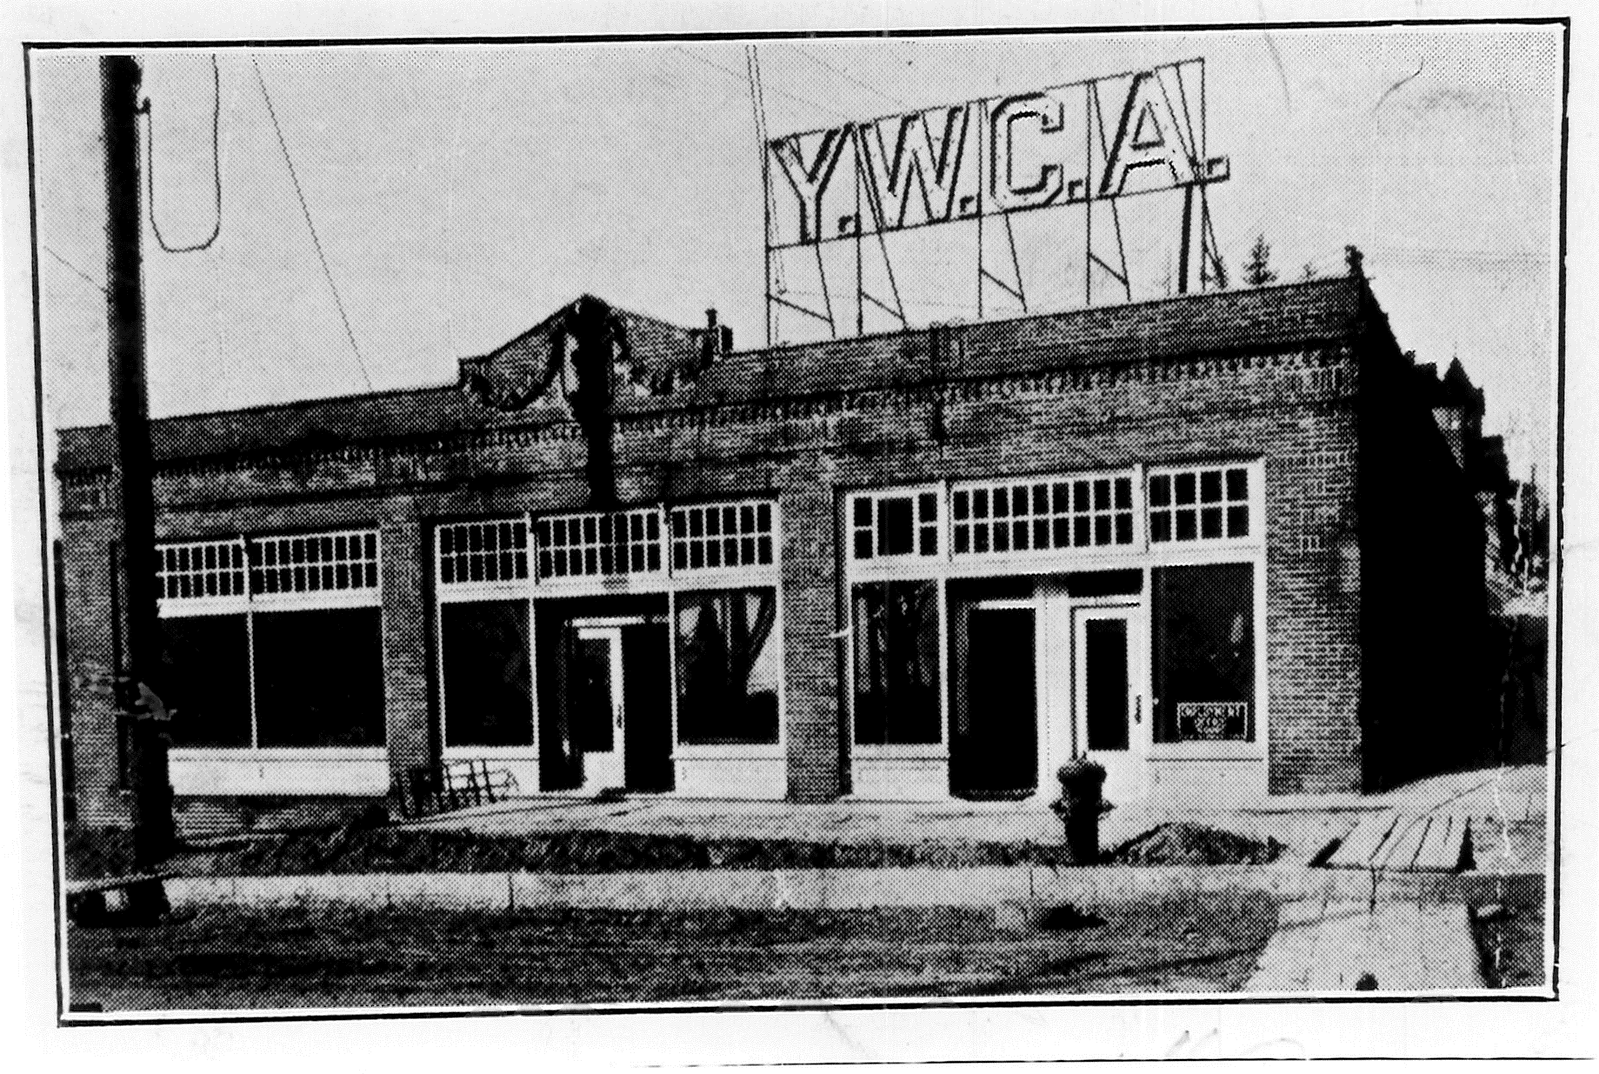 Original YWCA Building